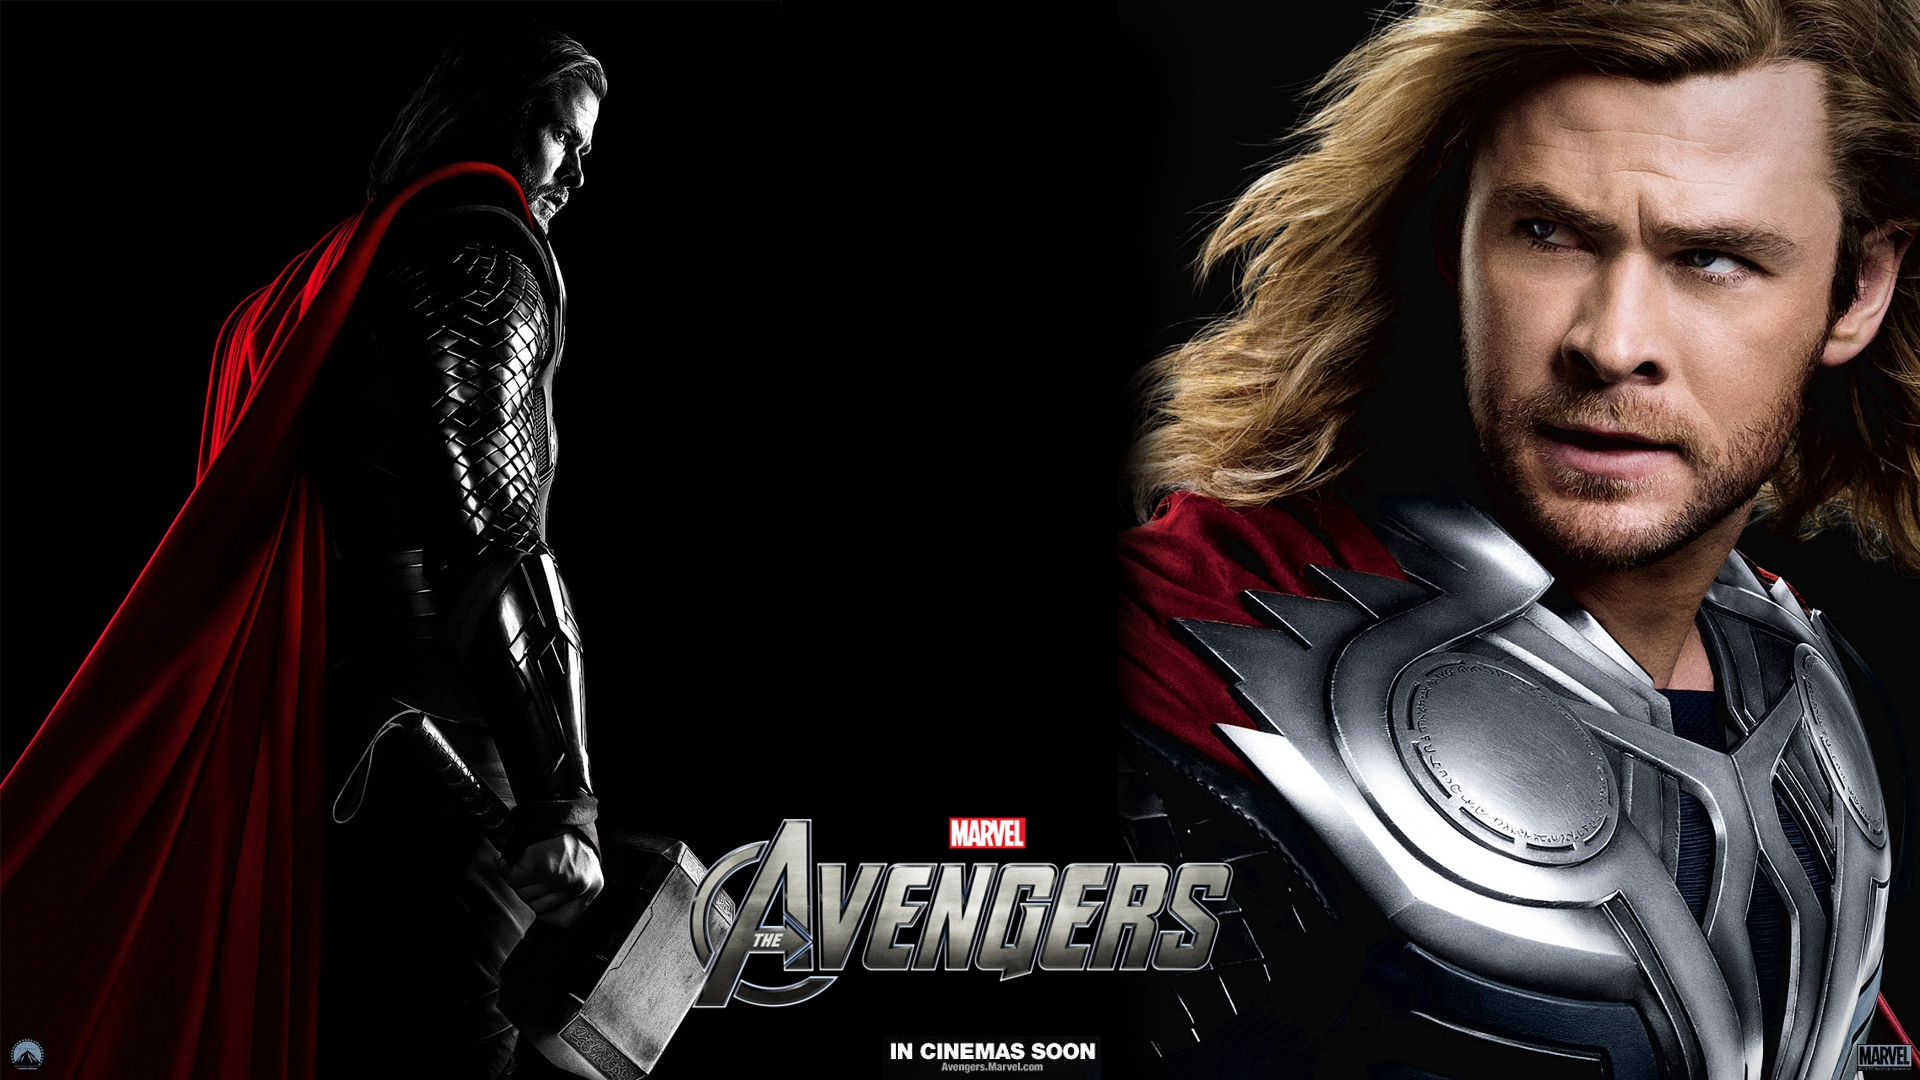 I Vendicatori images Thor HD wallpaper and background photos